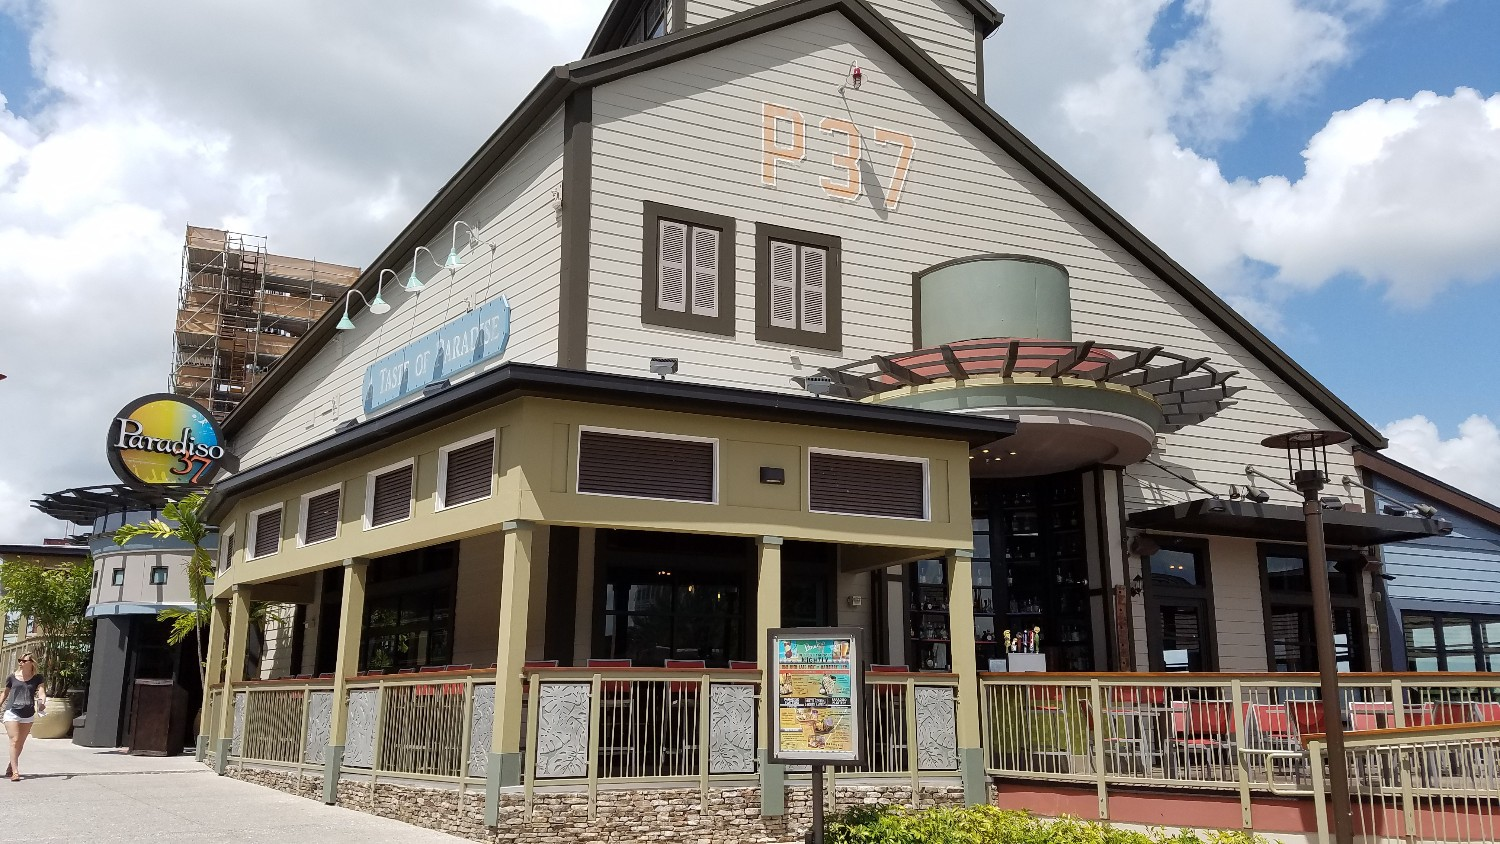 Paradiso 37 at Disney Springs